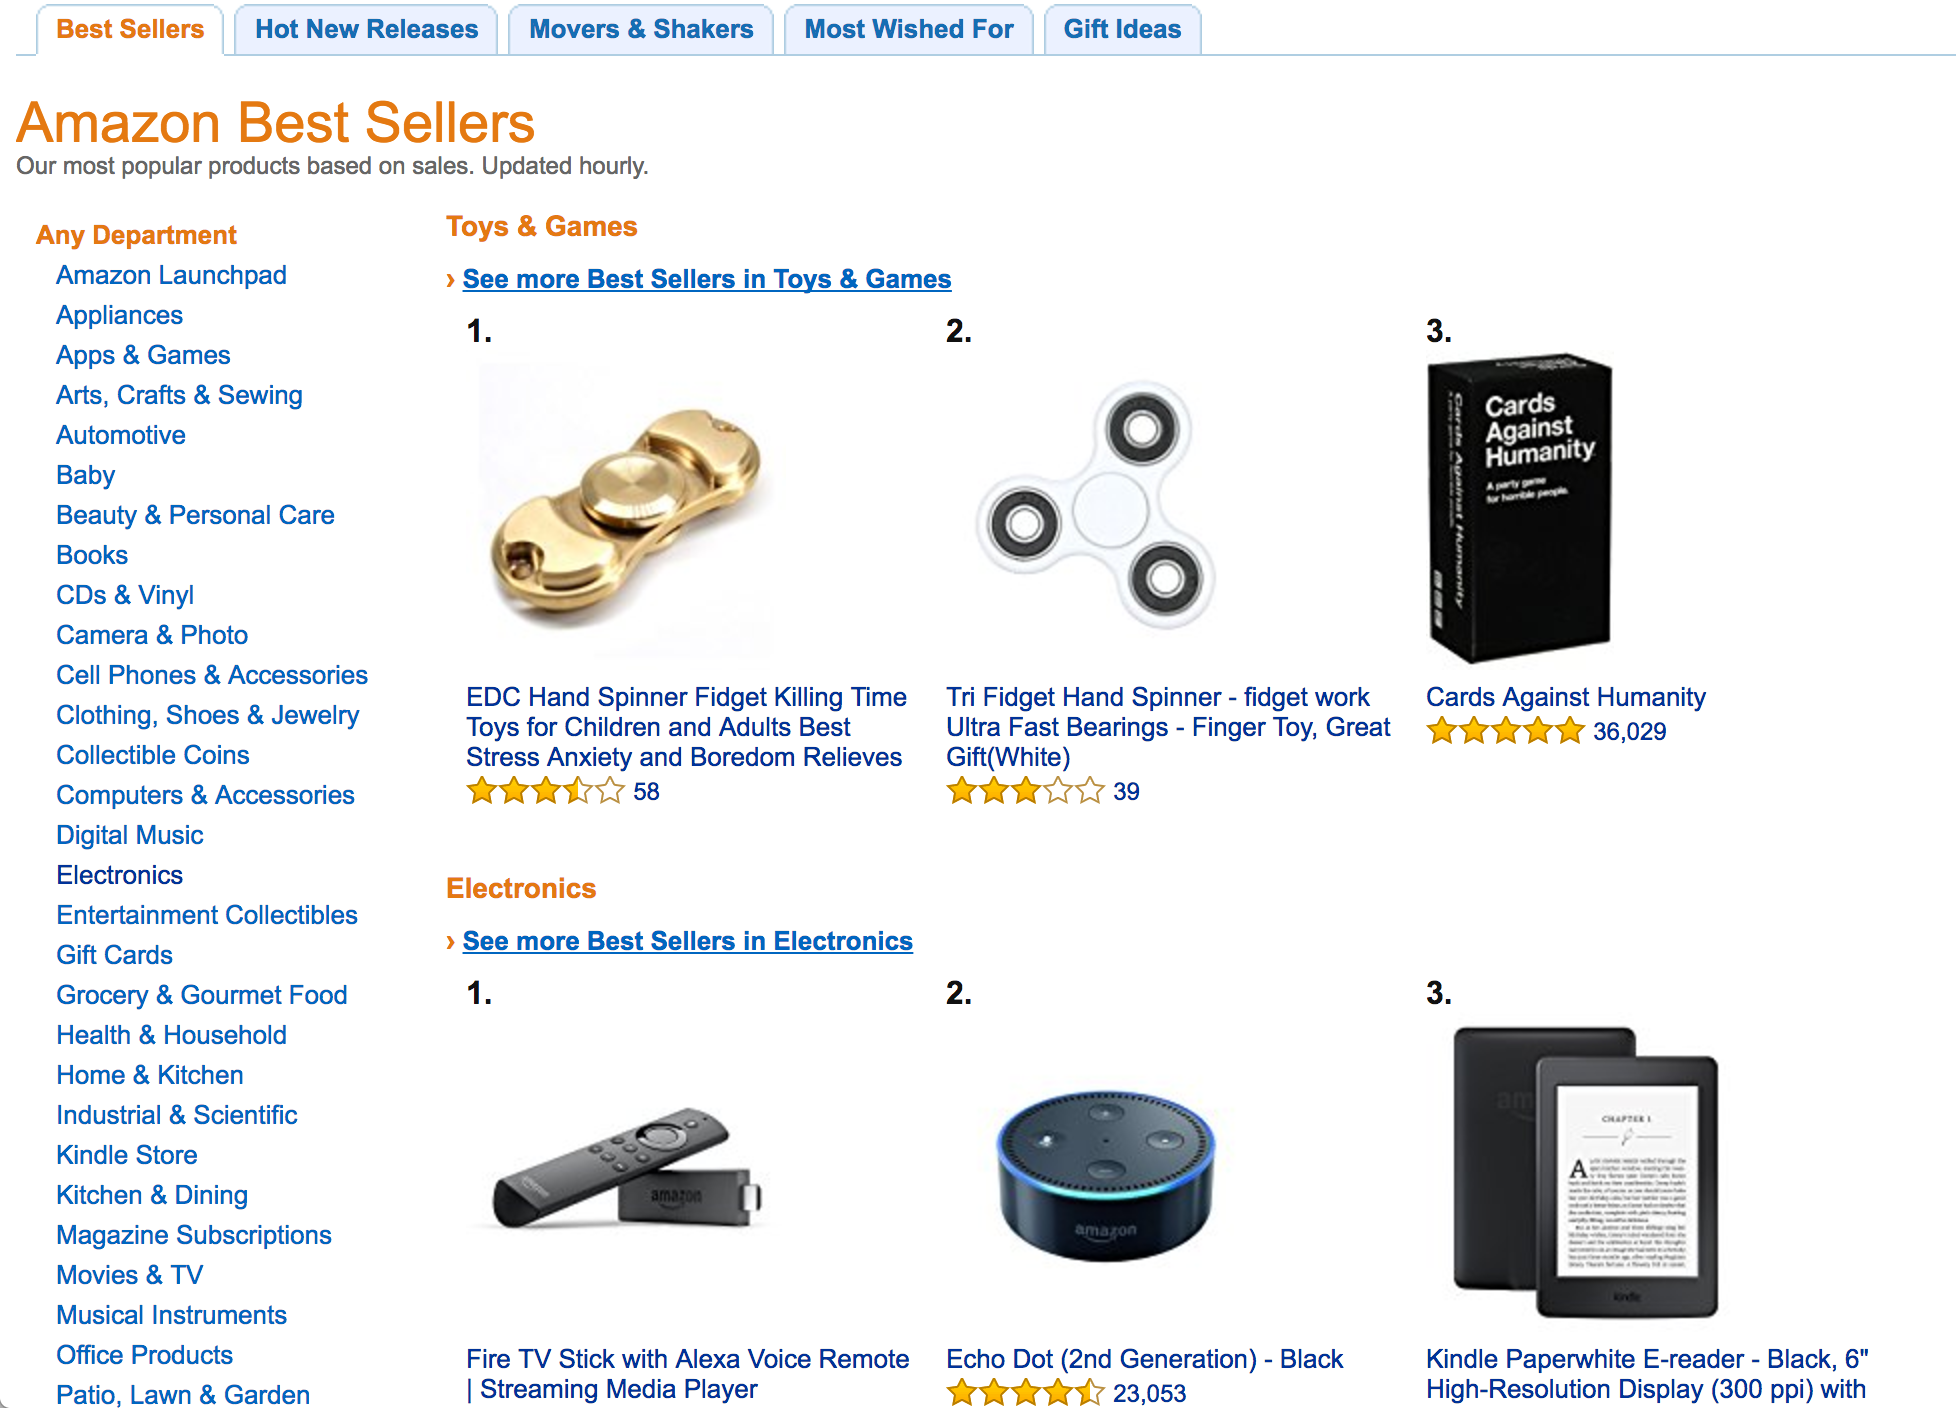 How to build your product line off of proven top selling Amazon